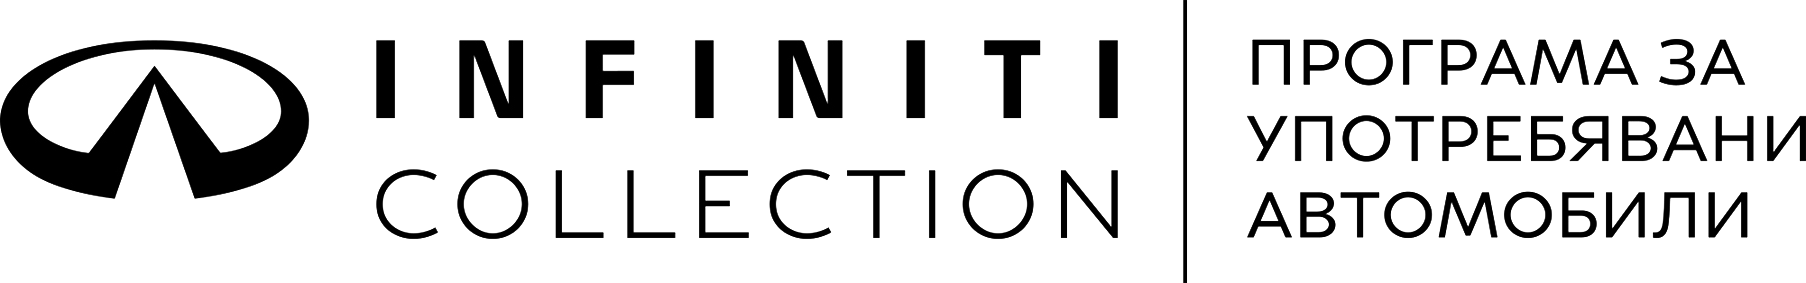 Infiniti Collection